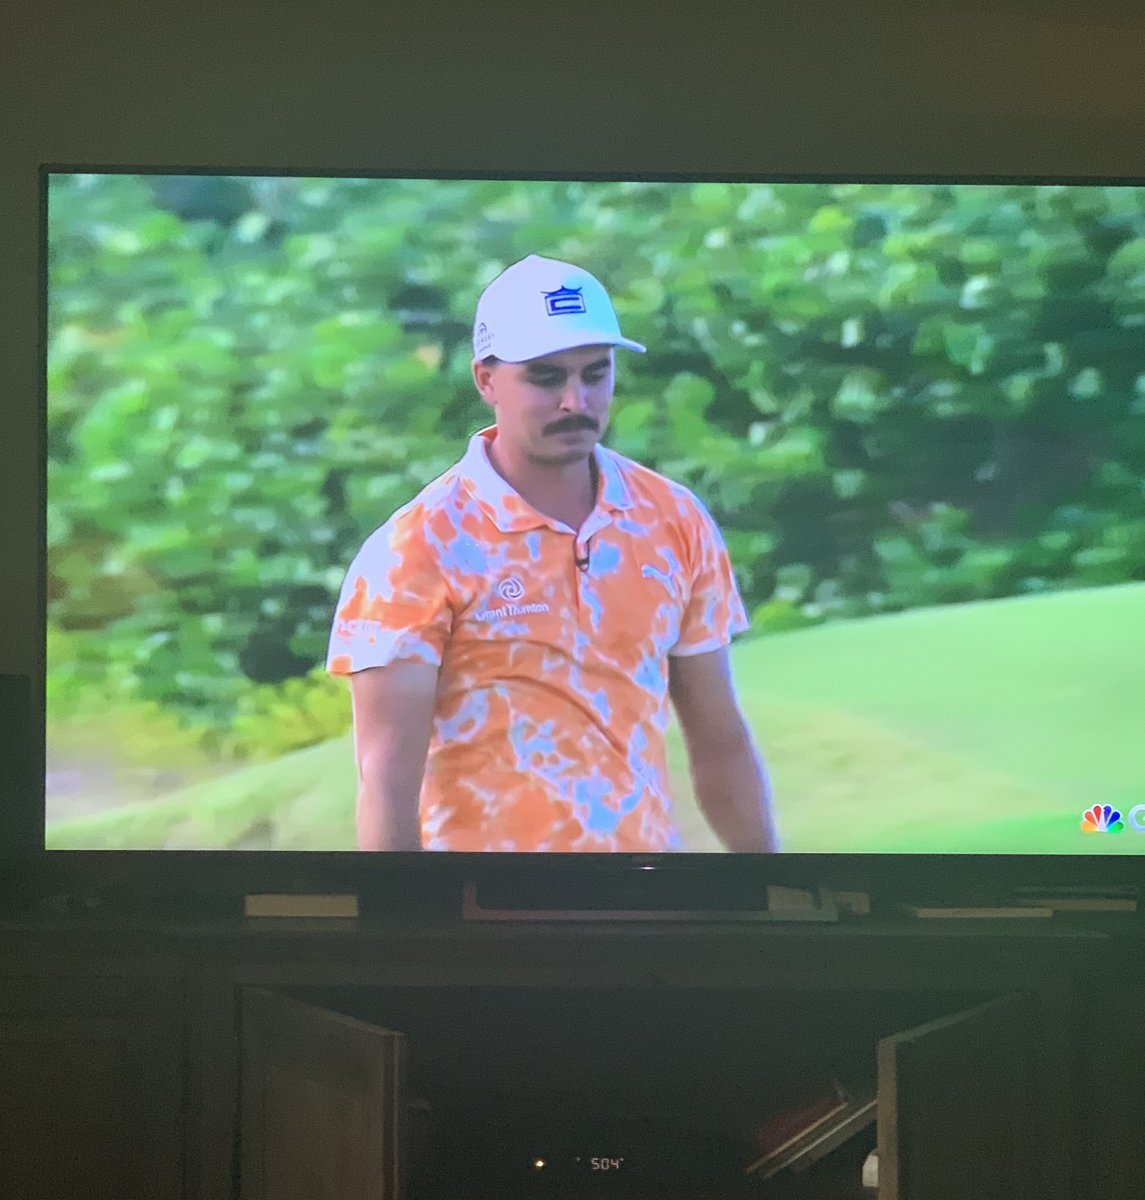 @JoeConchaTV's photo on Rickie